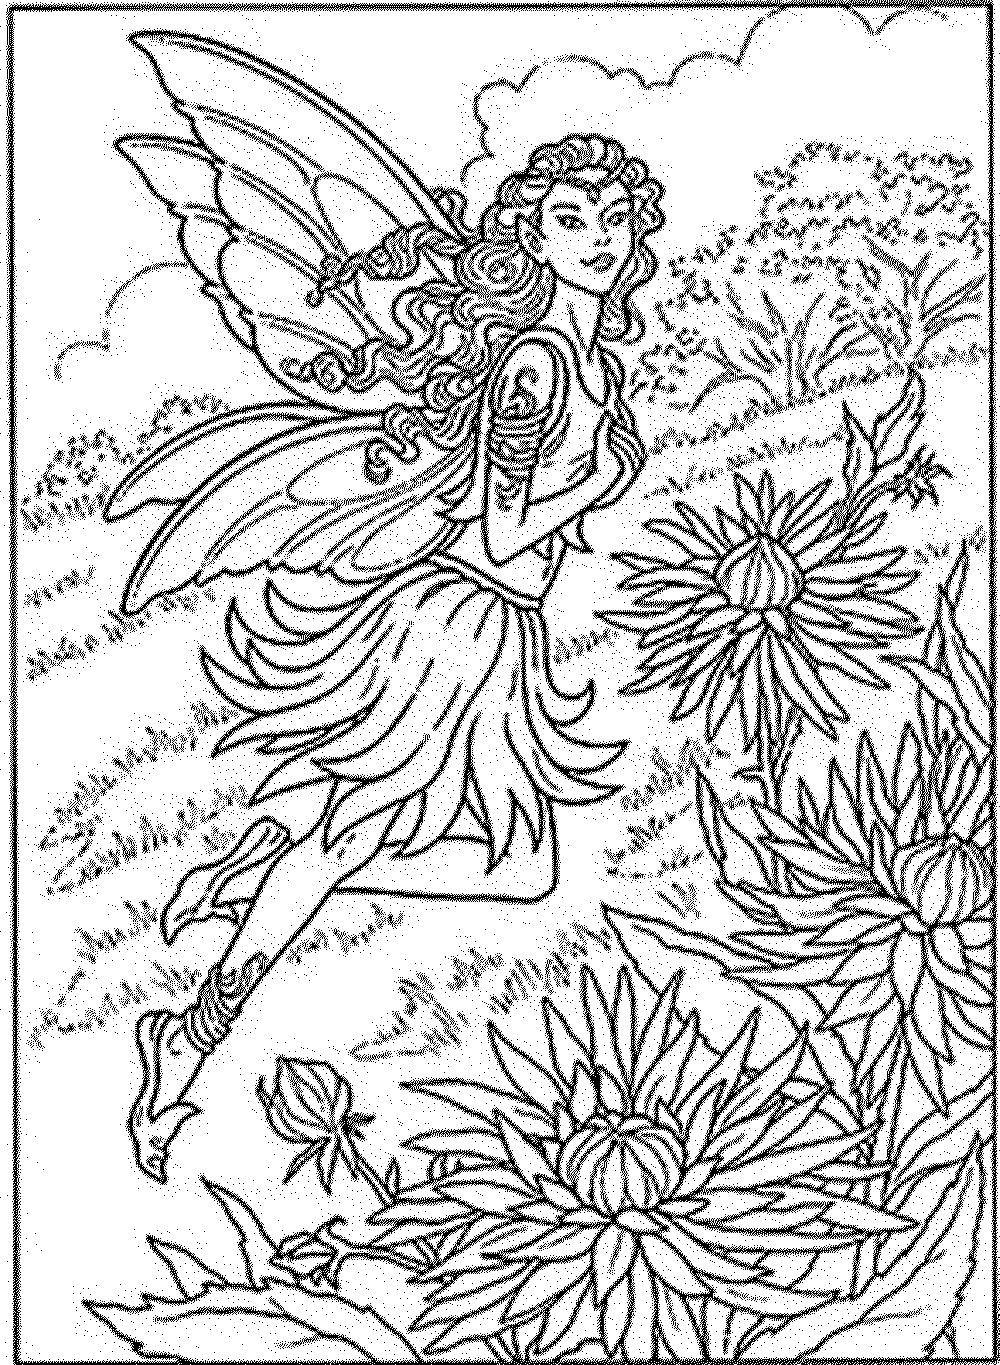 Fairy Coloring Pages For Adults Fairy Coloring Book Coloring Pages Fairy Coloring [ 1365 x 1000 Pixel ]